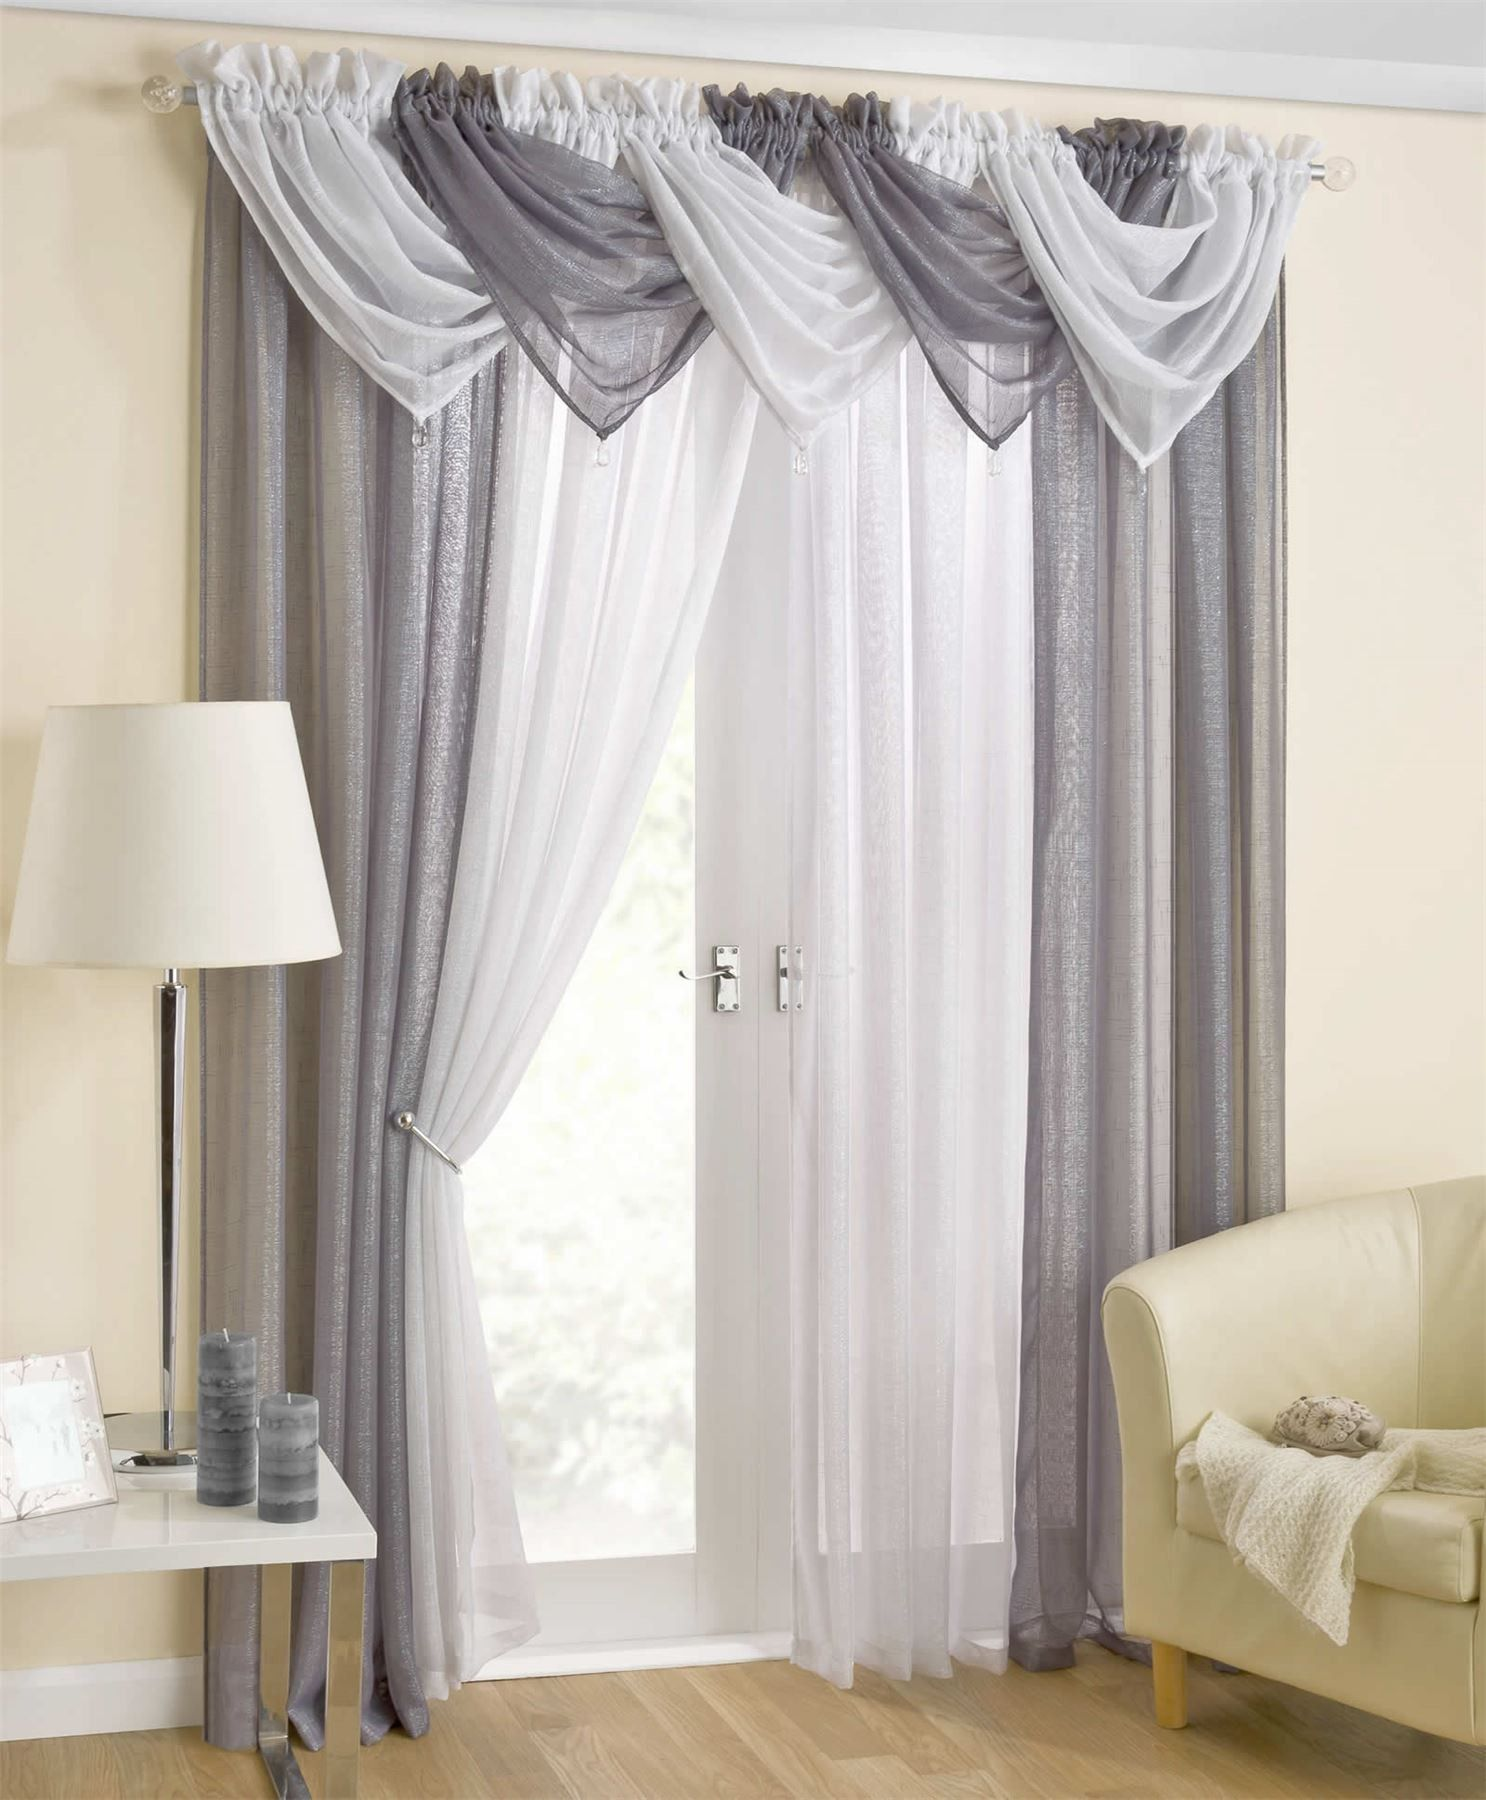 Curtain drape | 3 day diet | Pinterest | Window, Curtain ideas and ...